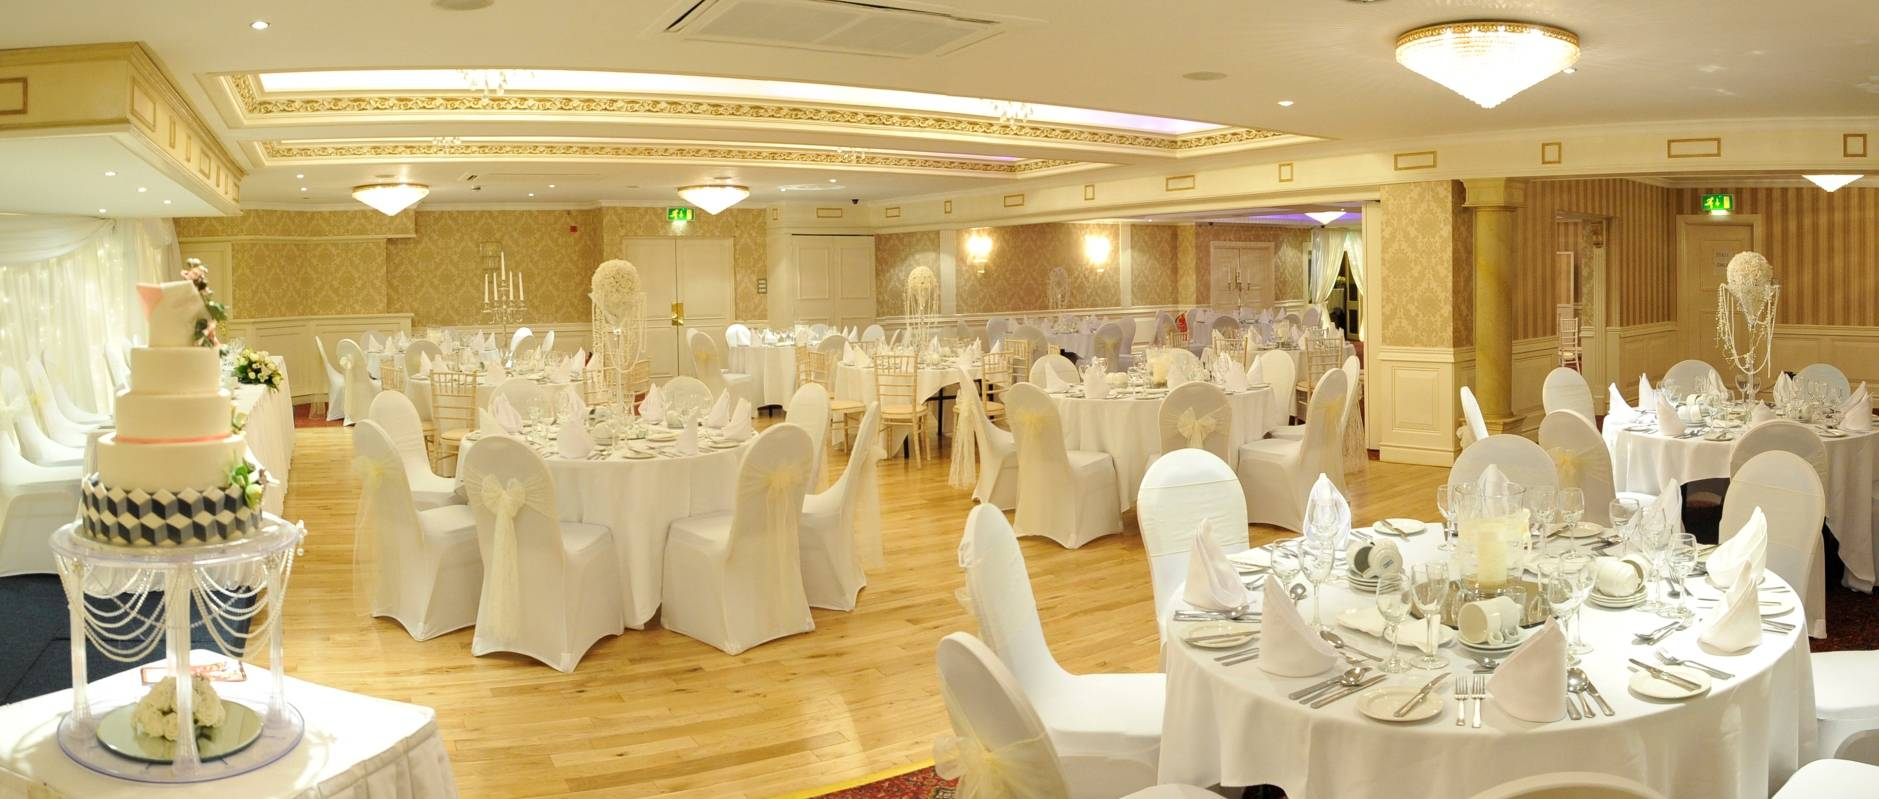 Wedding Venue Bushtown Hotel Coleraine